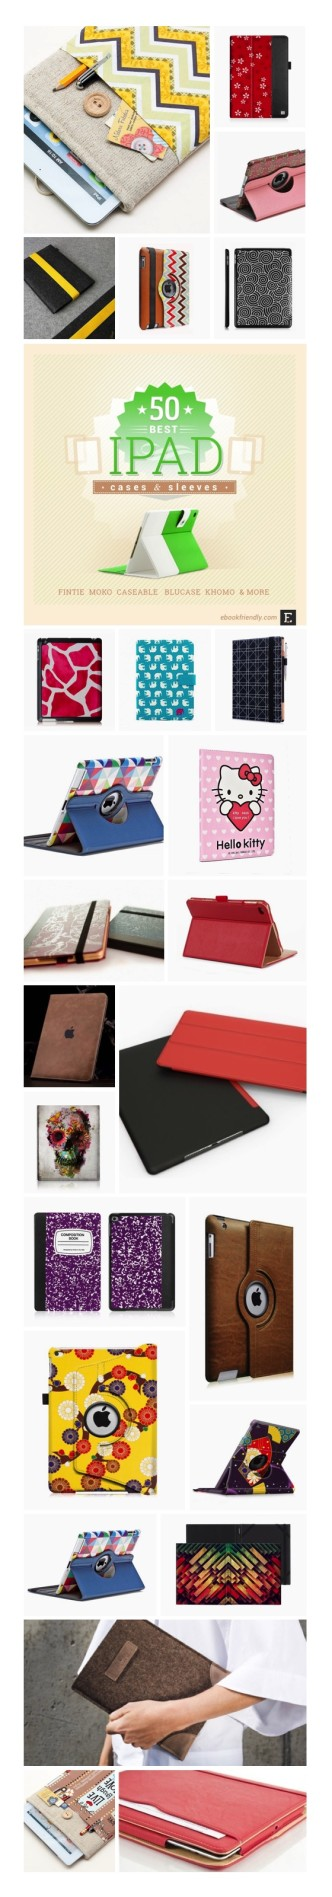 Most interesting iPad case covers #infographic